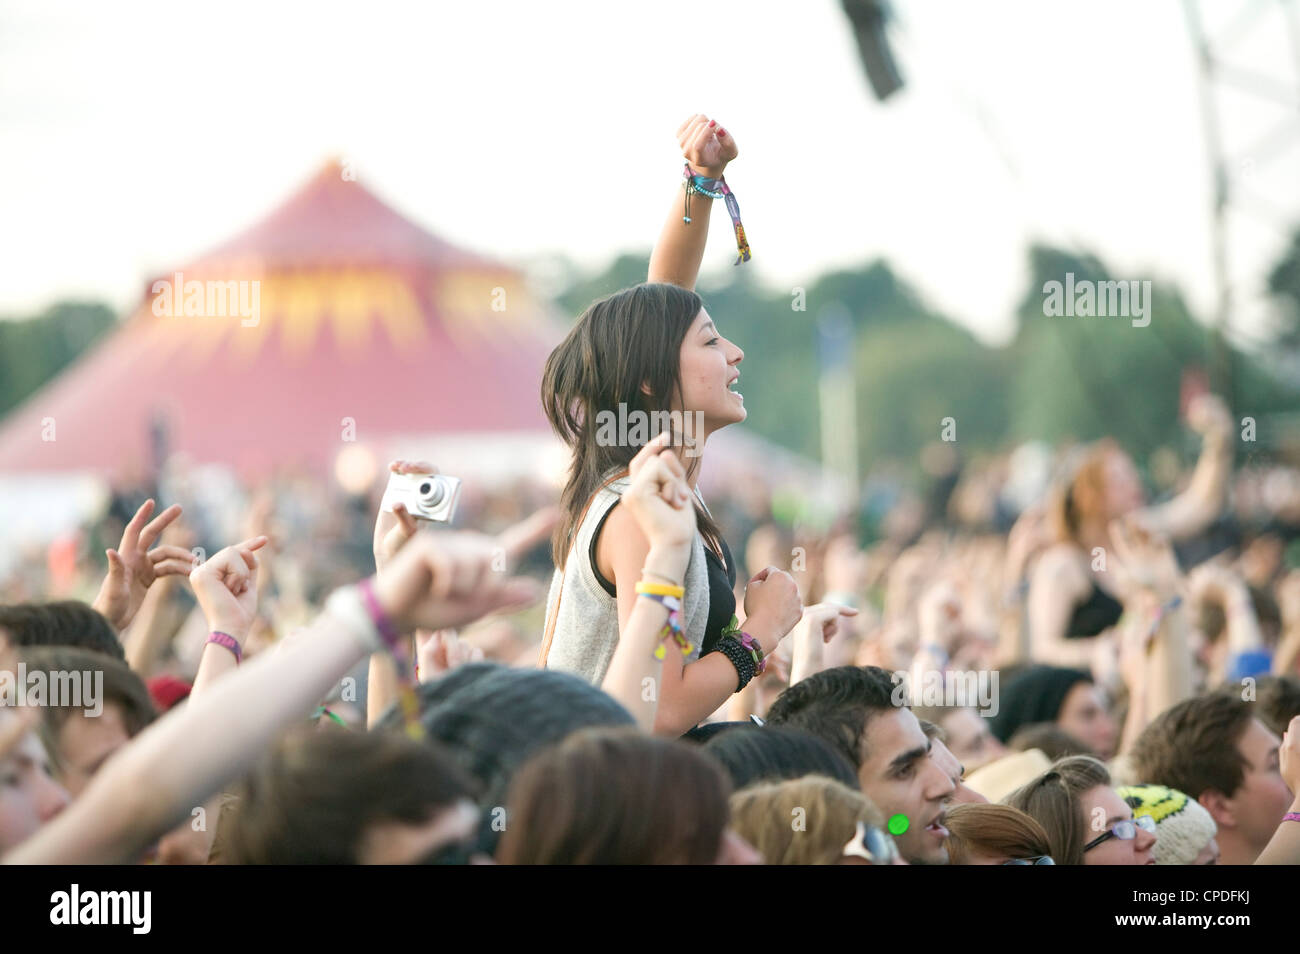 Girl at a music festival on shoulders in the crowd cheering - Stock Image